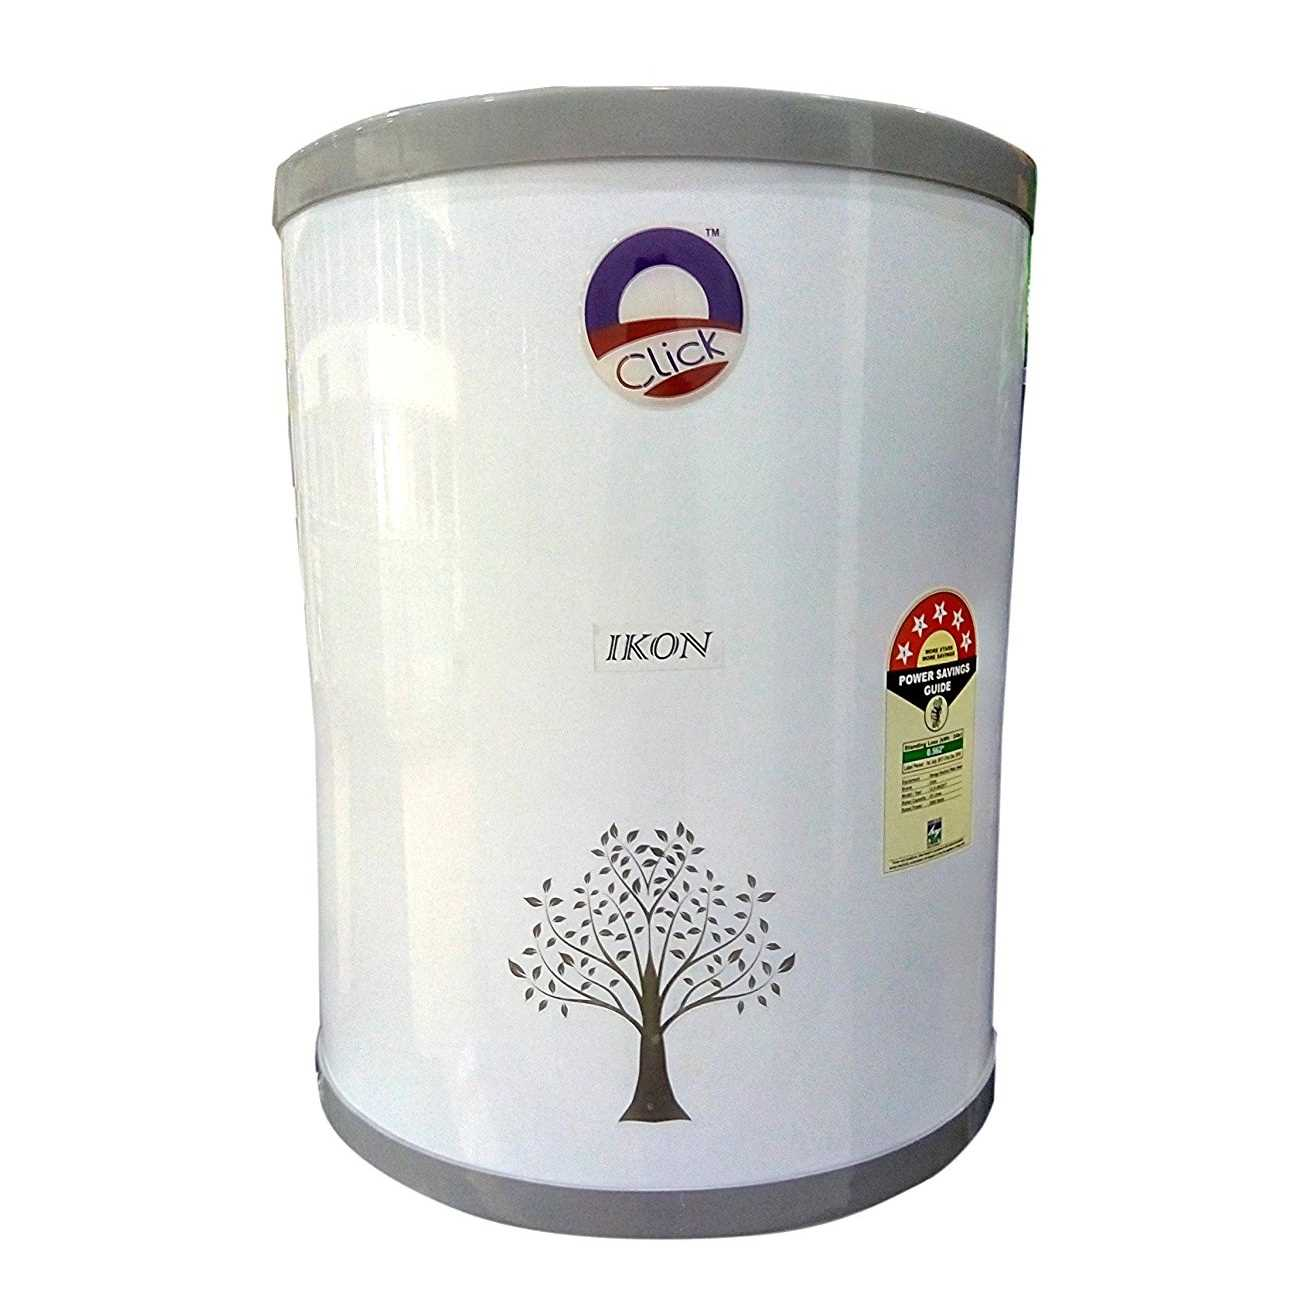 Click Ikon 25 Litre Storage Water Heater